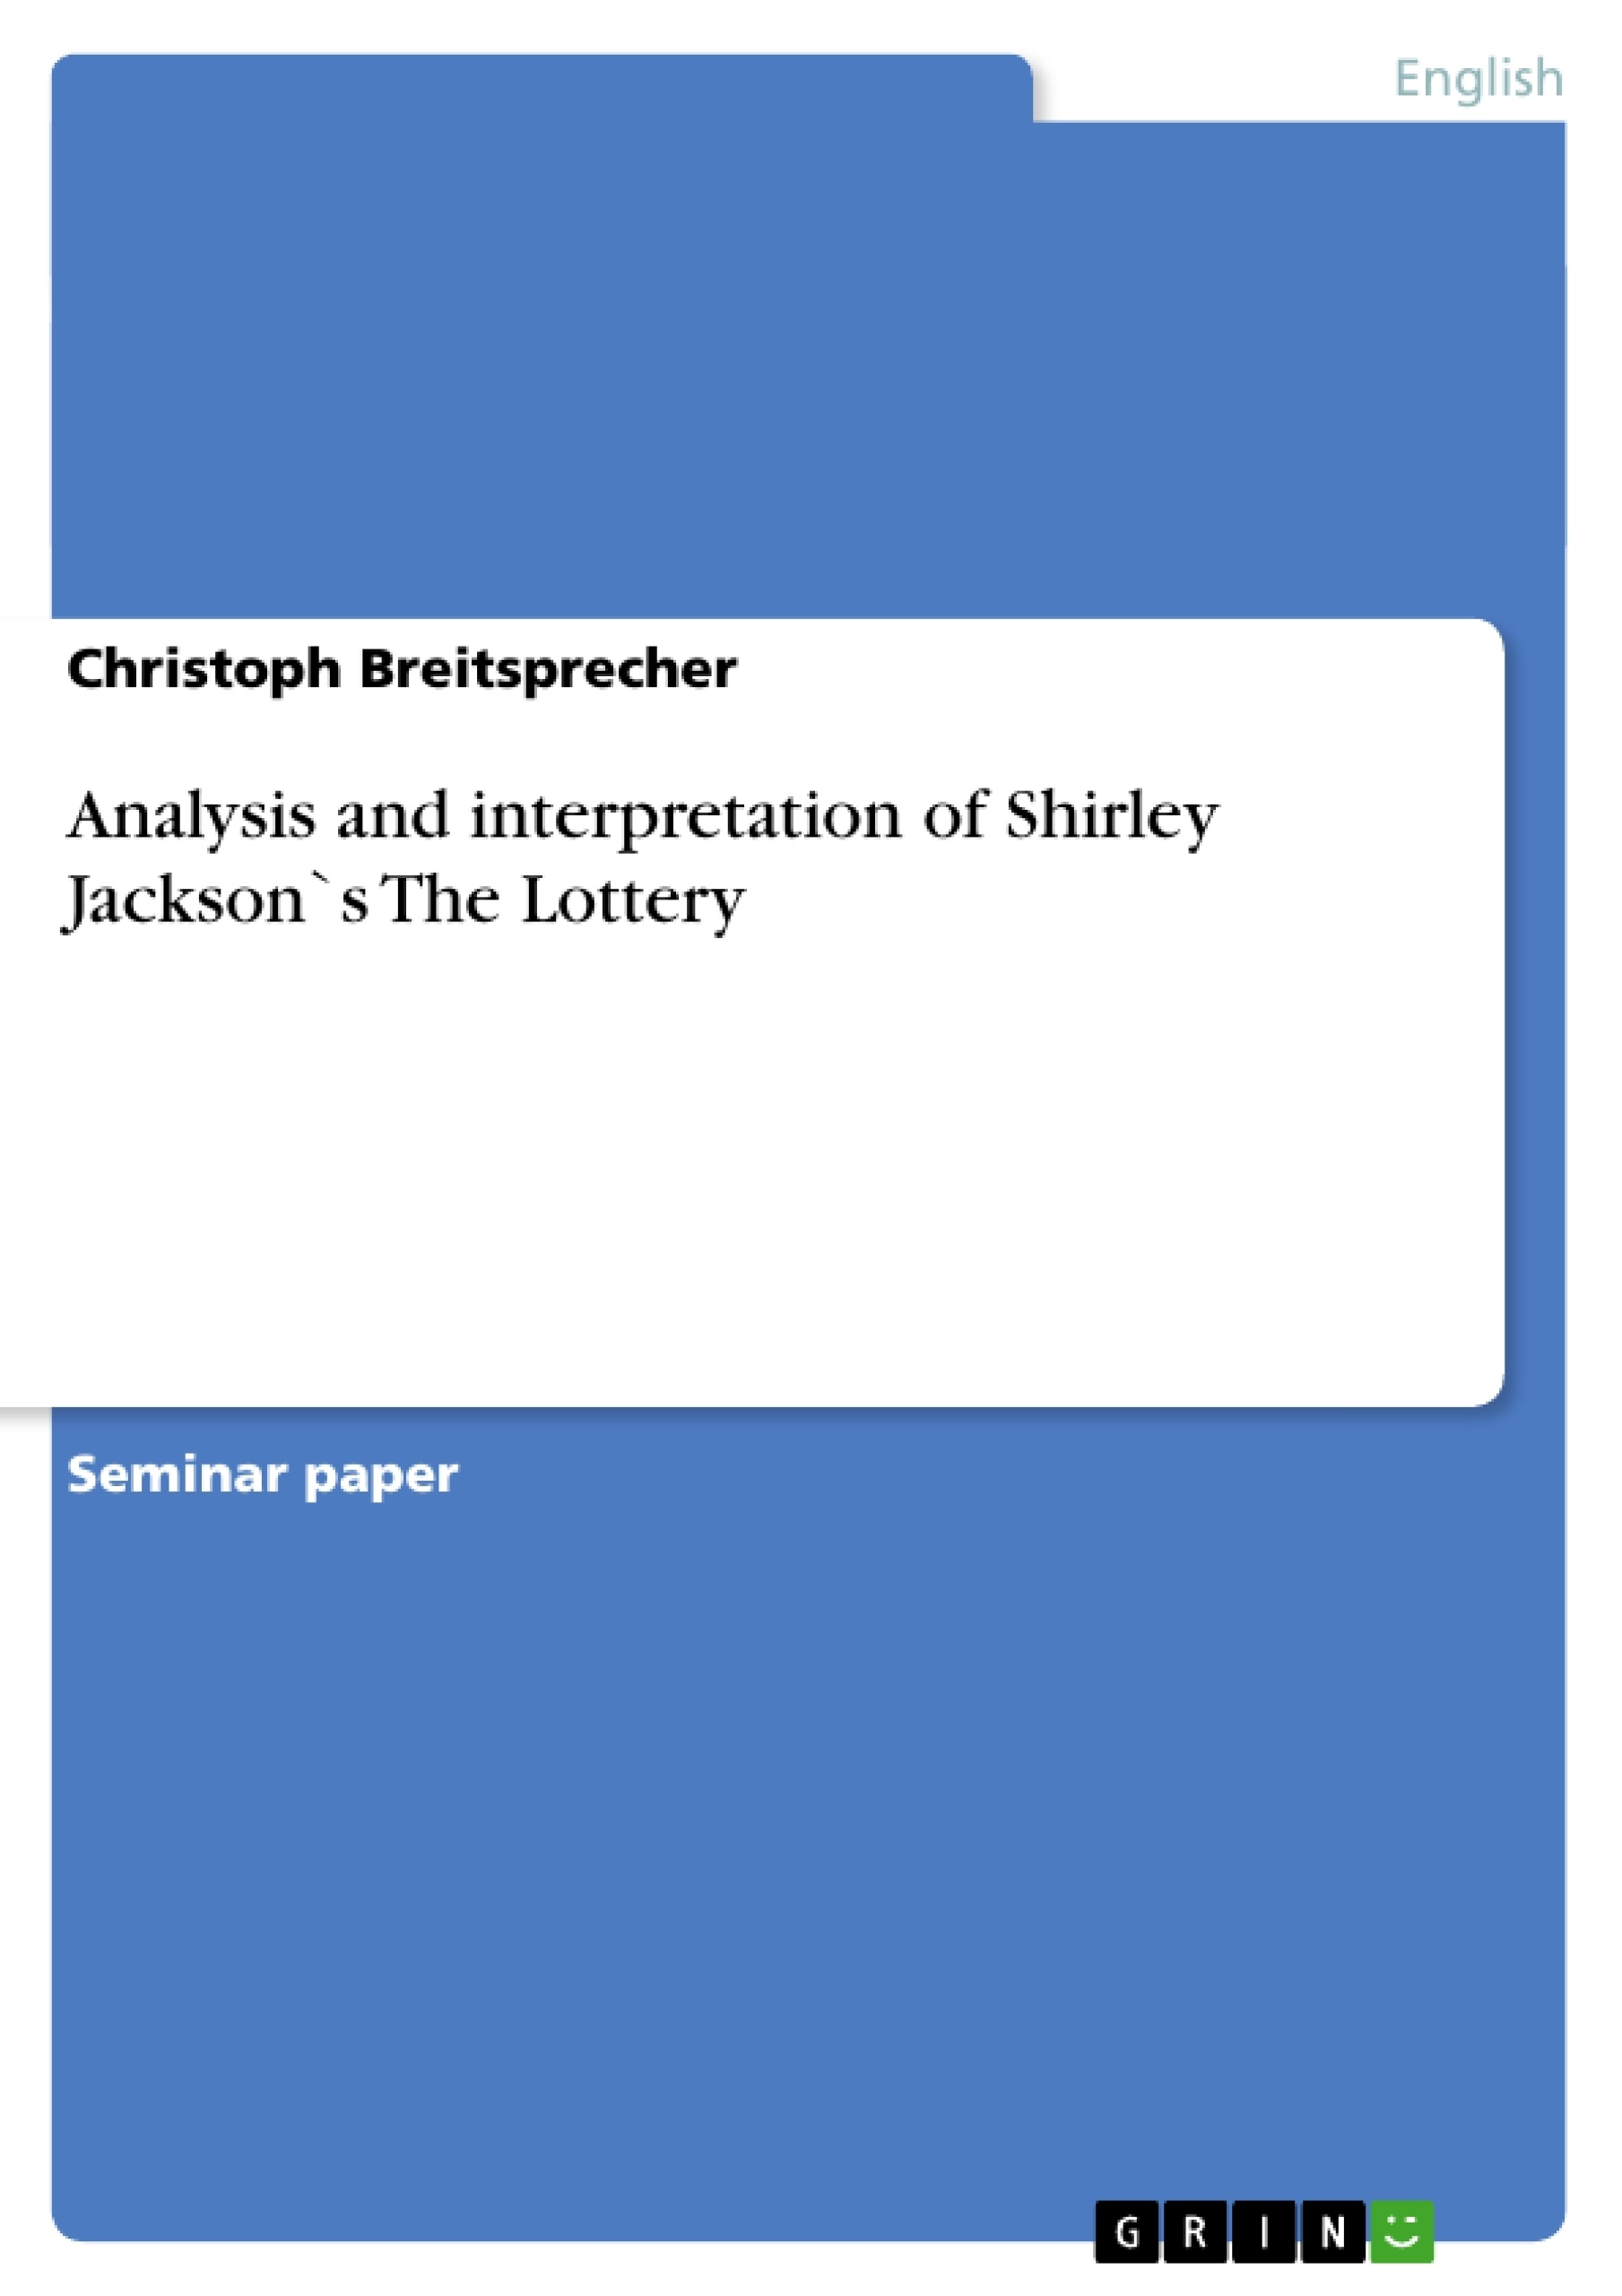 Thesis Statement The Lottery